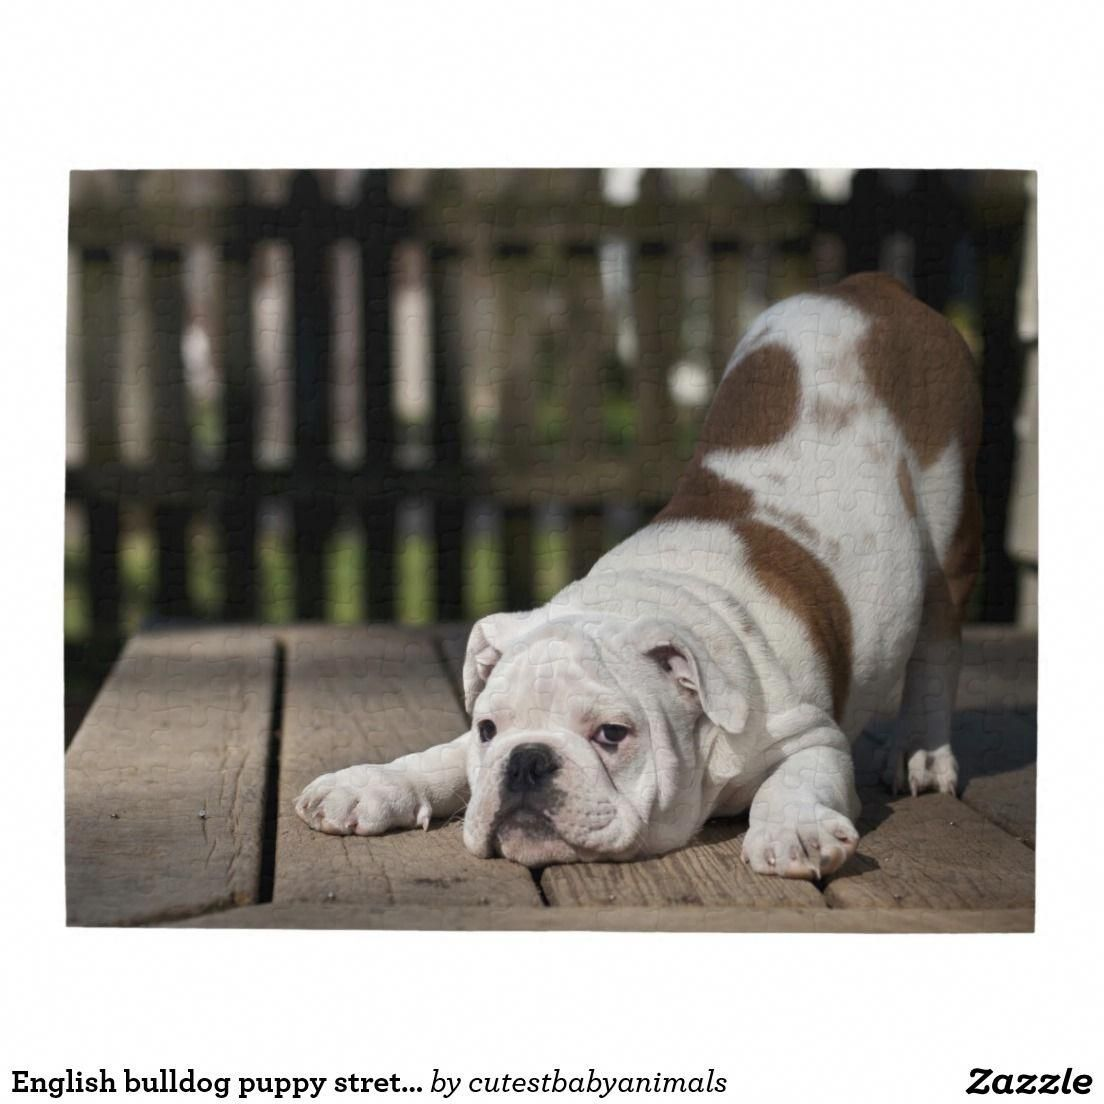 English Bulldog Puppies For Sale – Be Prepared Before You Make a Purchase